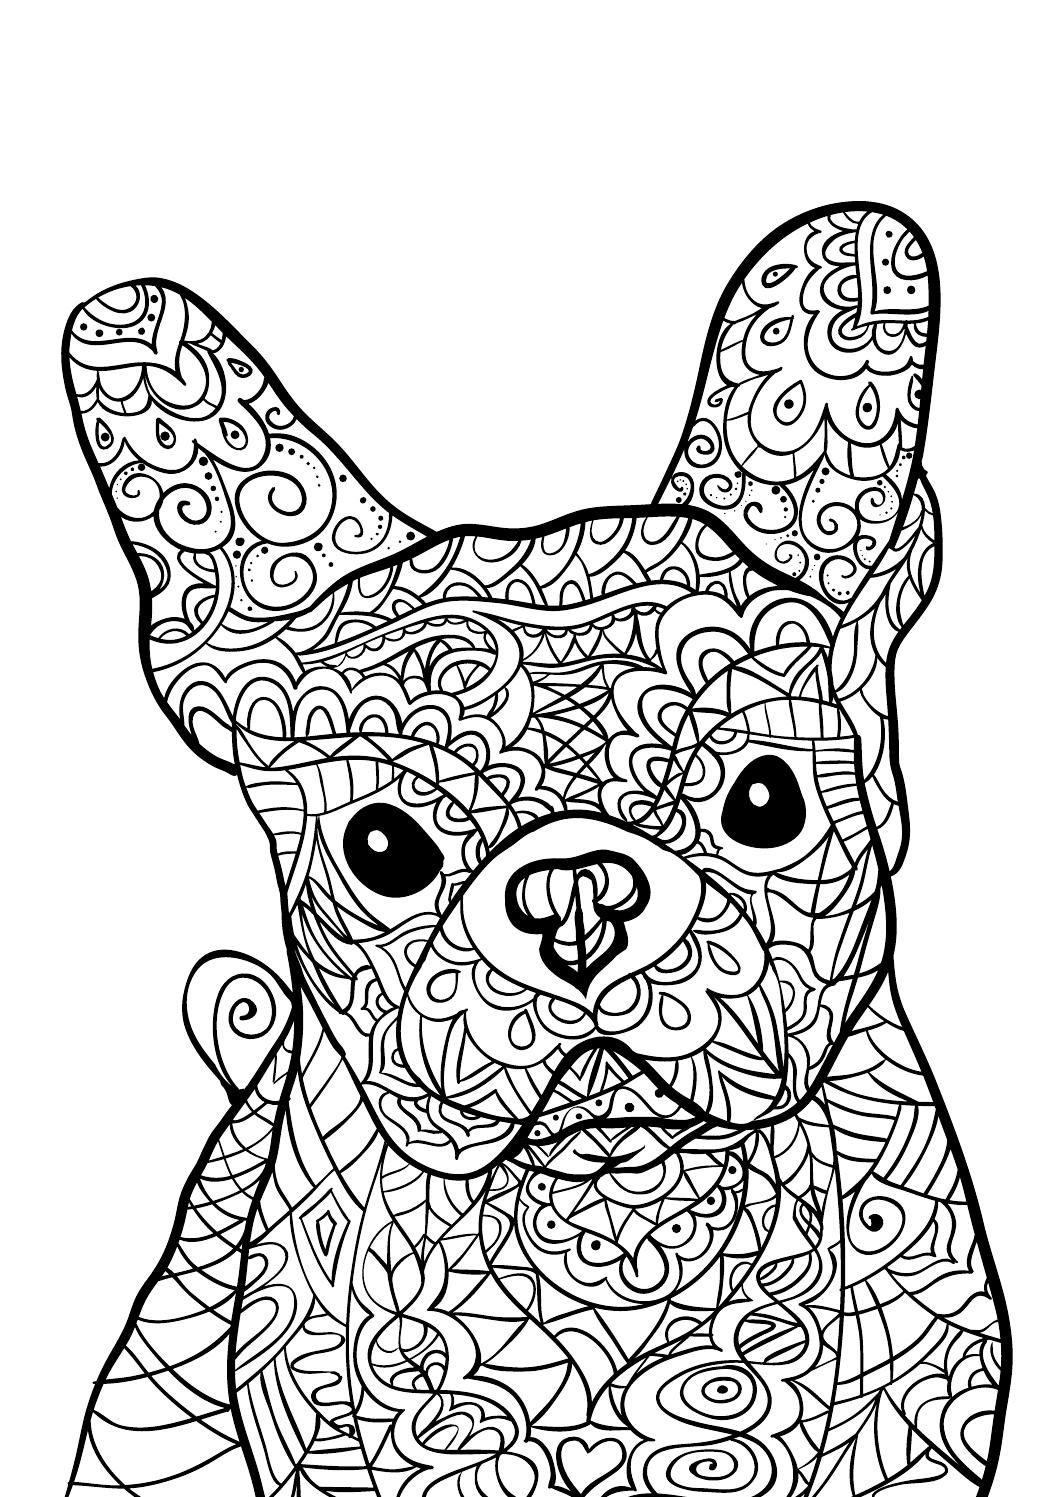 Colour Calm 07 (Sampler) (With images) Dog coloring book